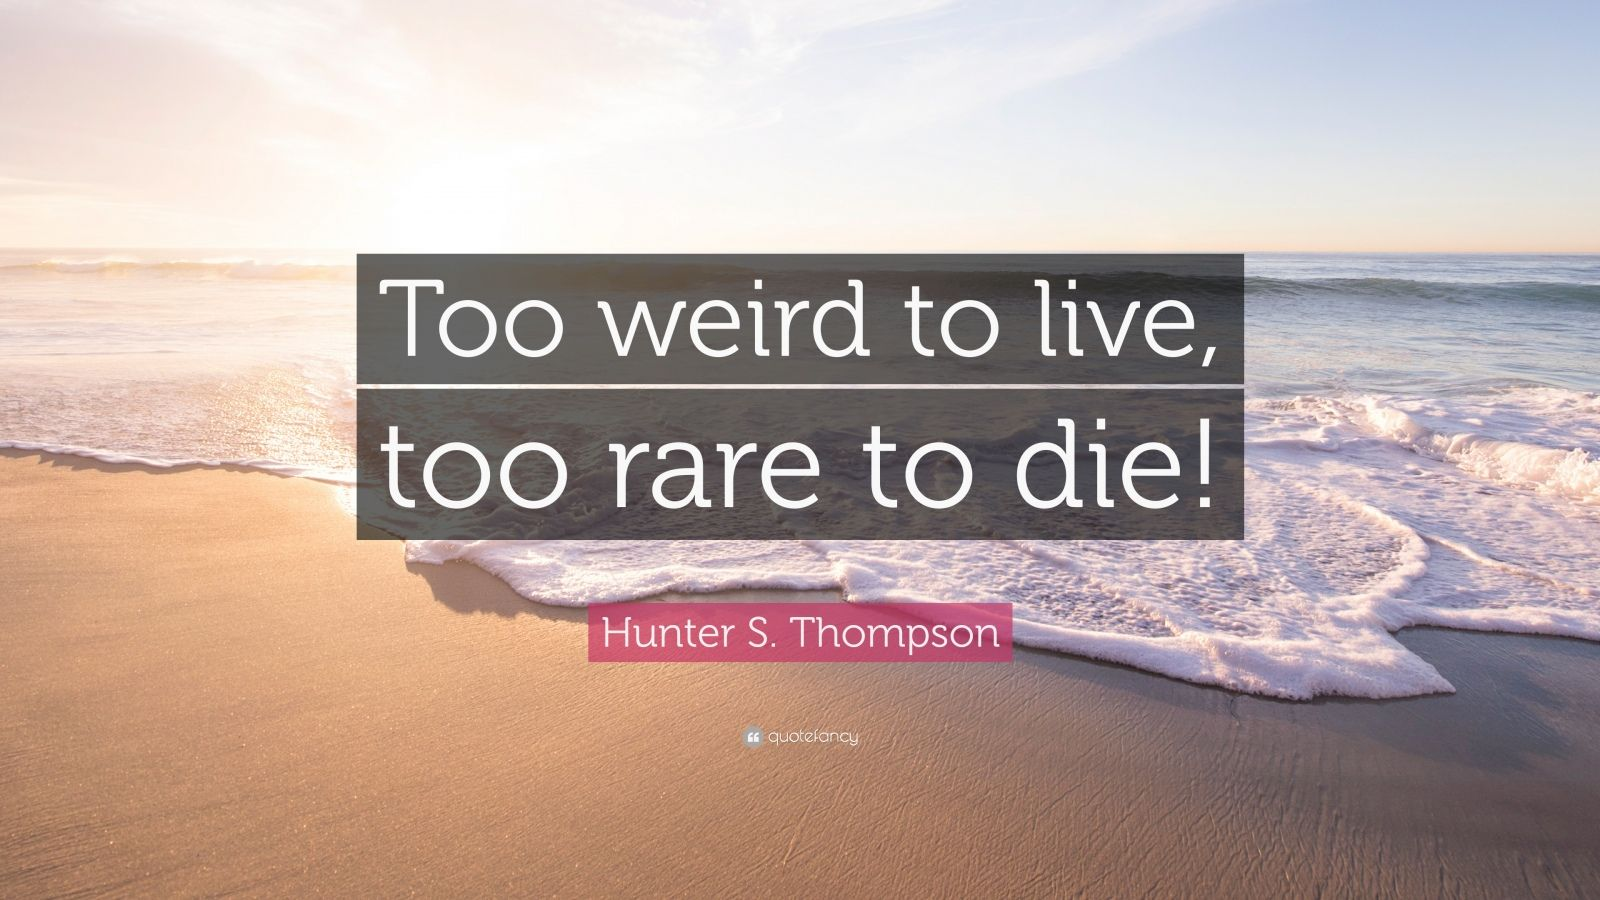 10 Ways Hunter S Thompson Was Too Weird To Live, Too Rare To Die